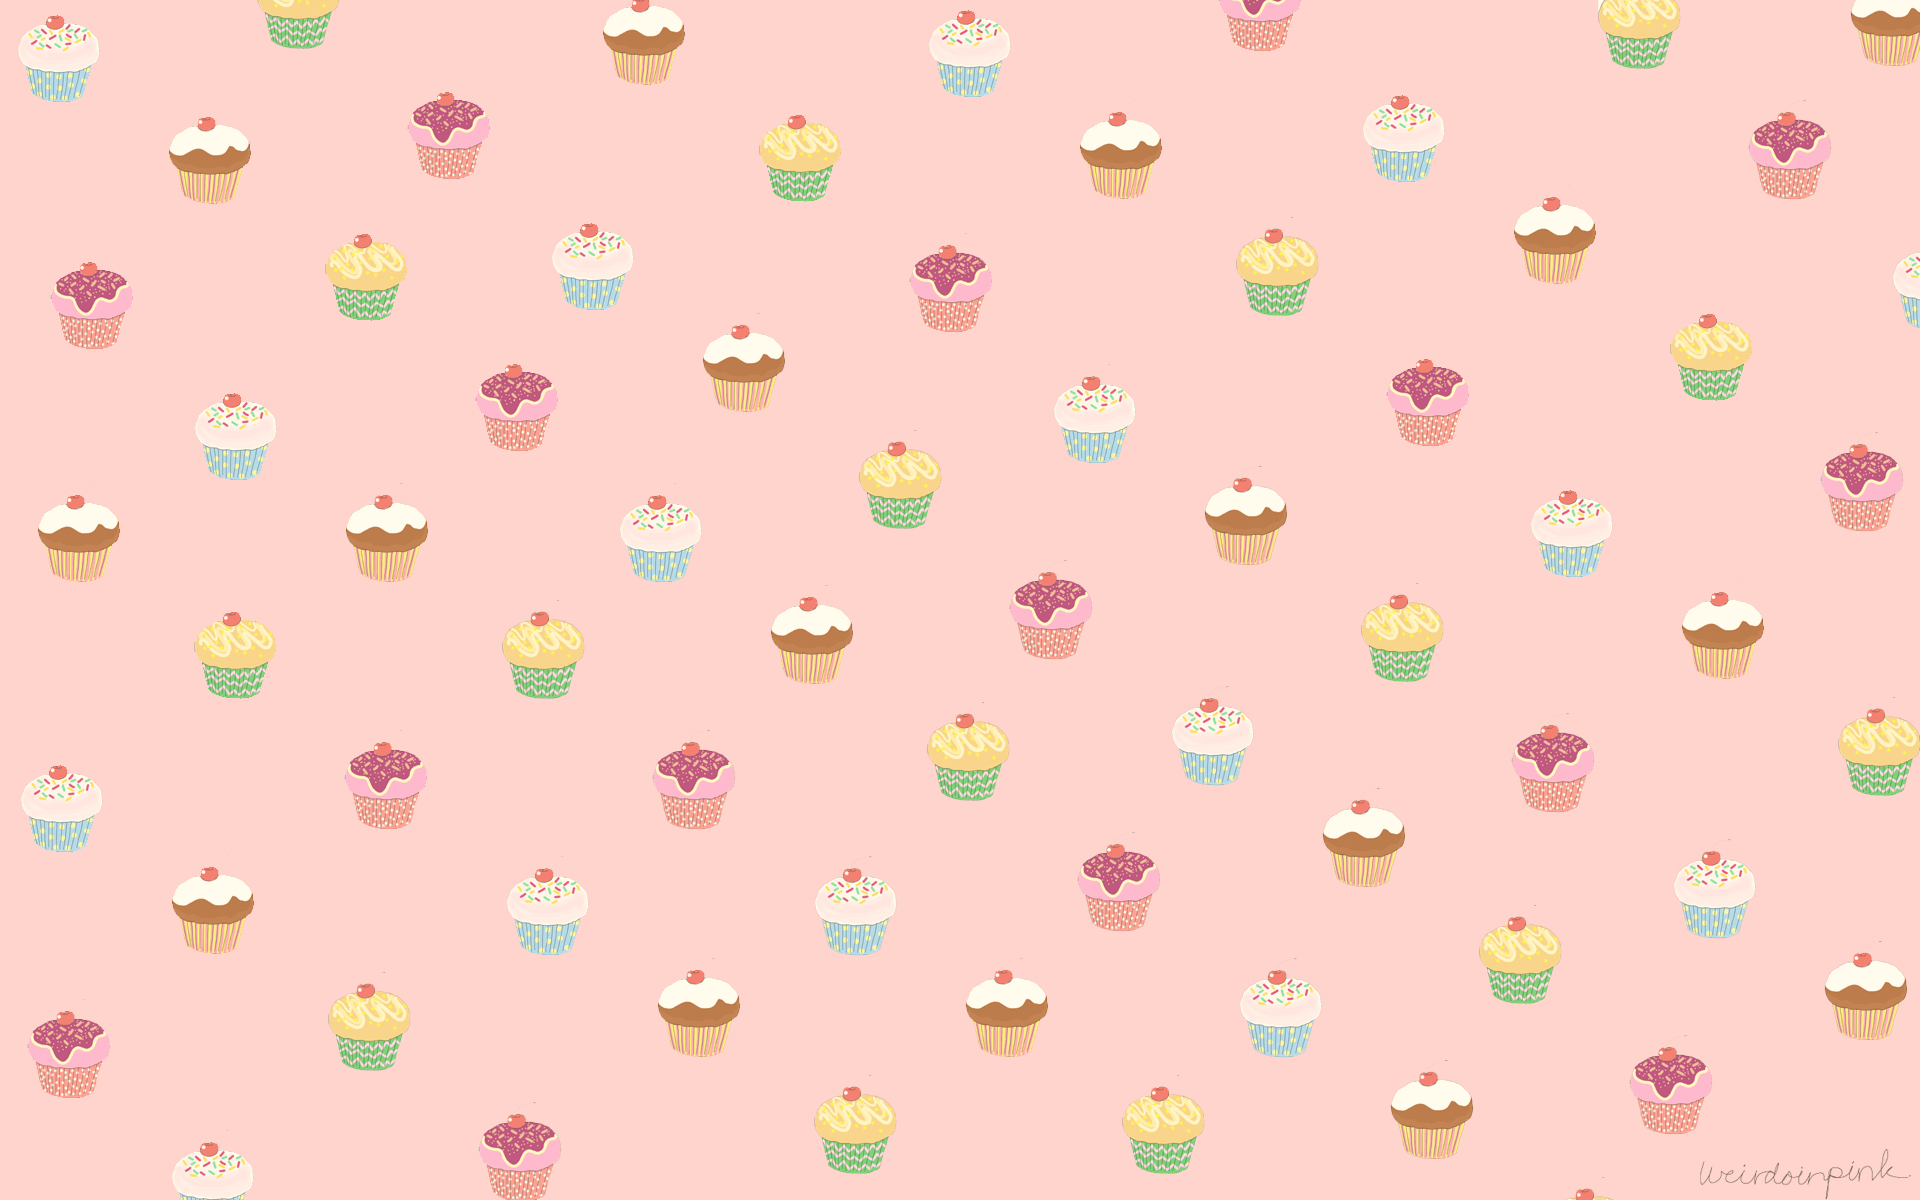 Cute Cake Images In Hd : Cup Cake Wallpapers - Wallpaper Cave